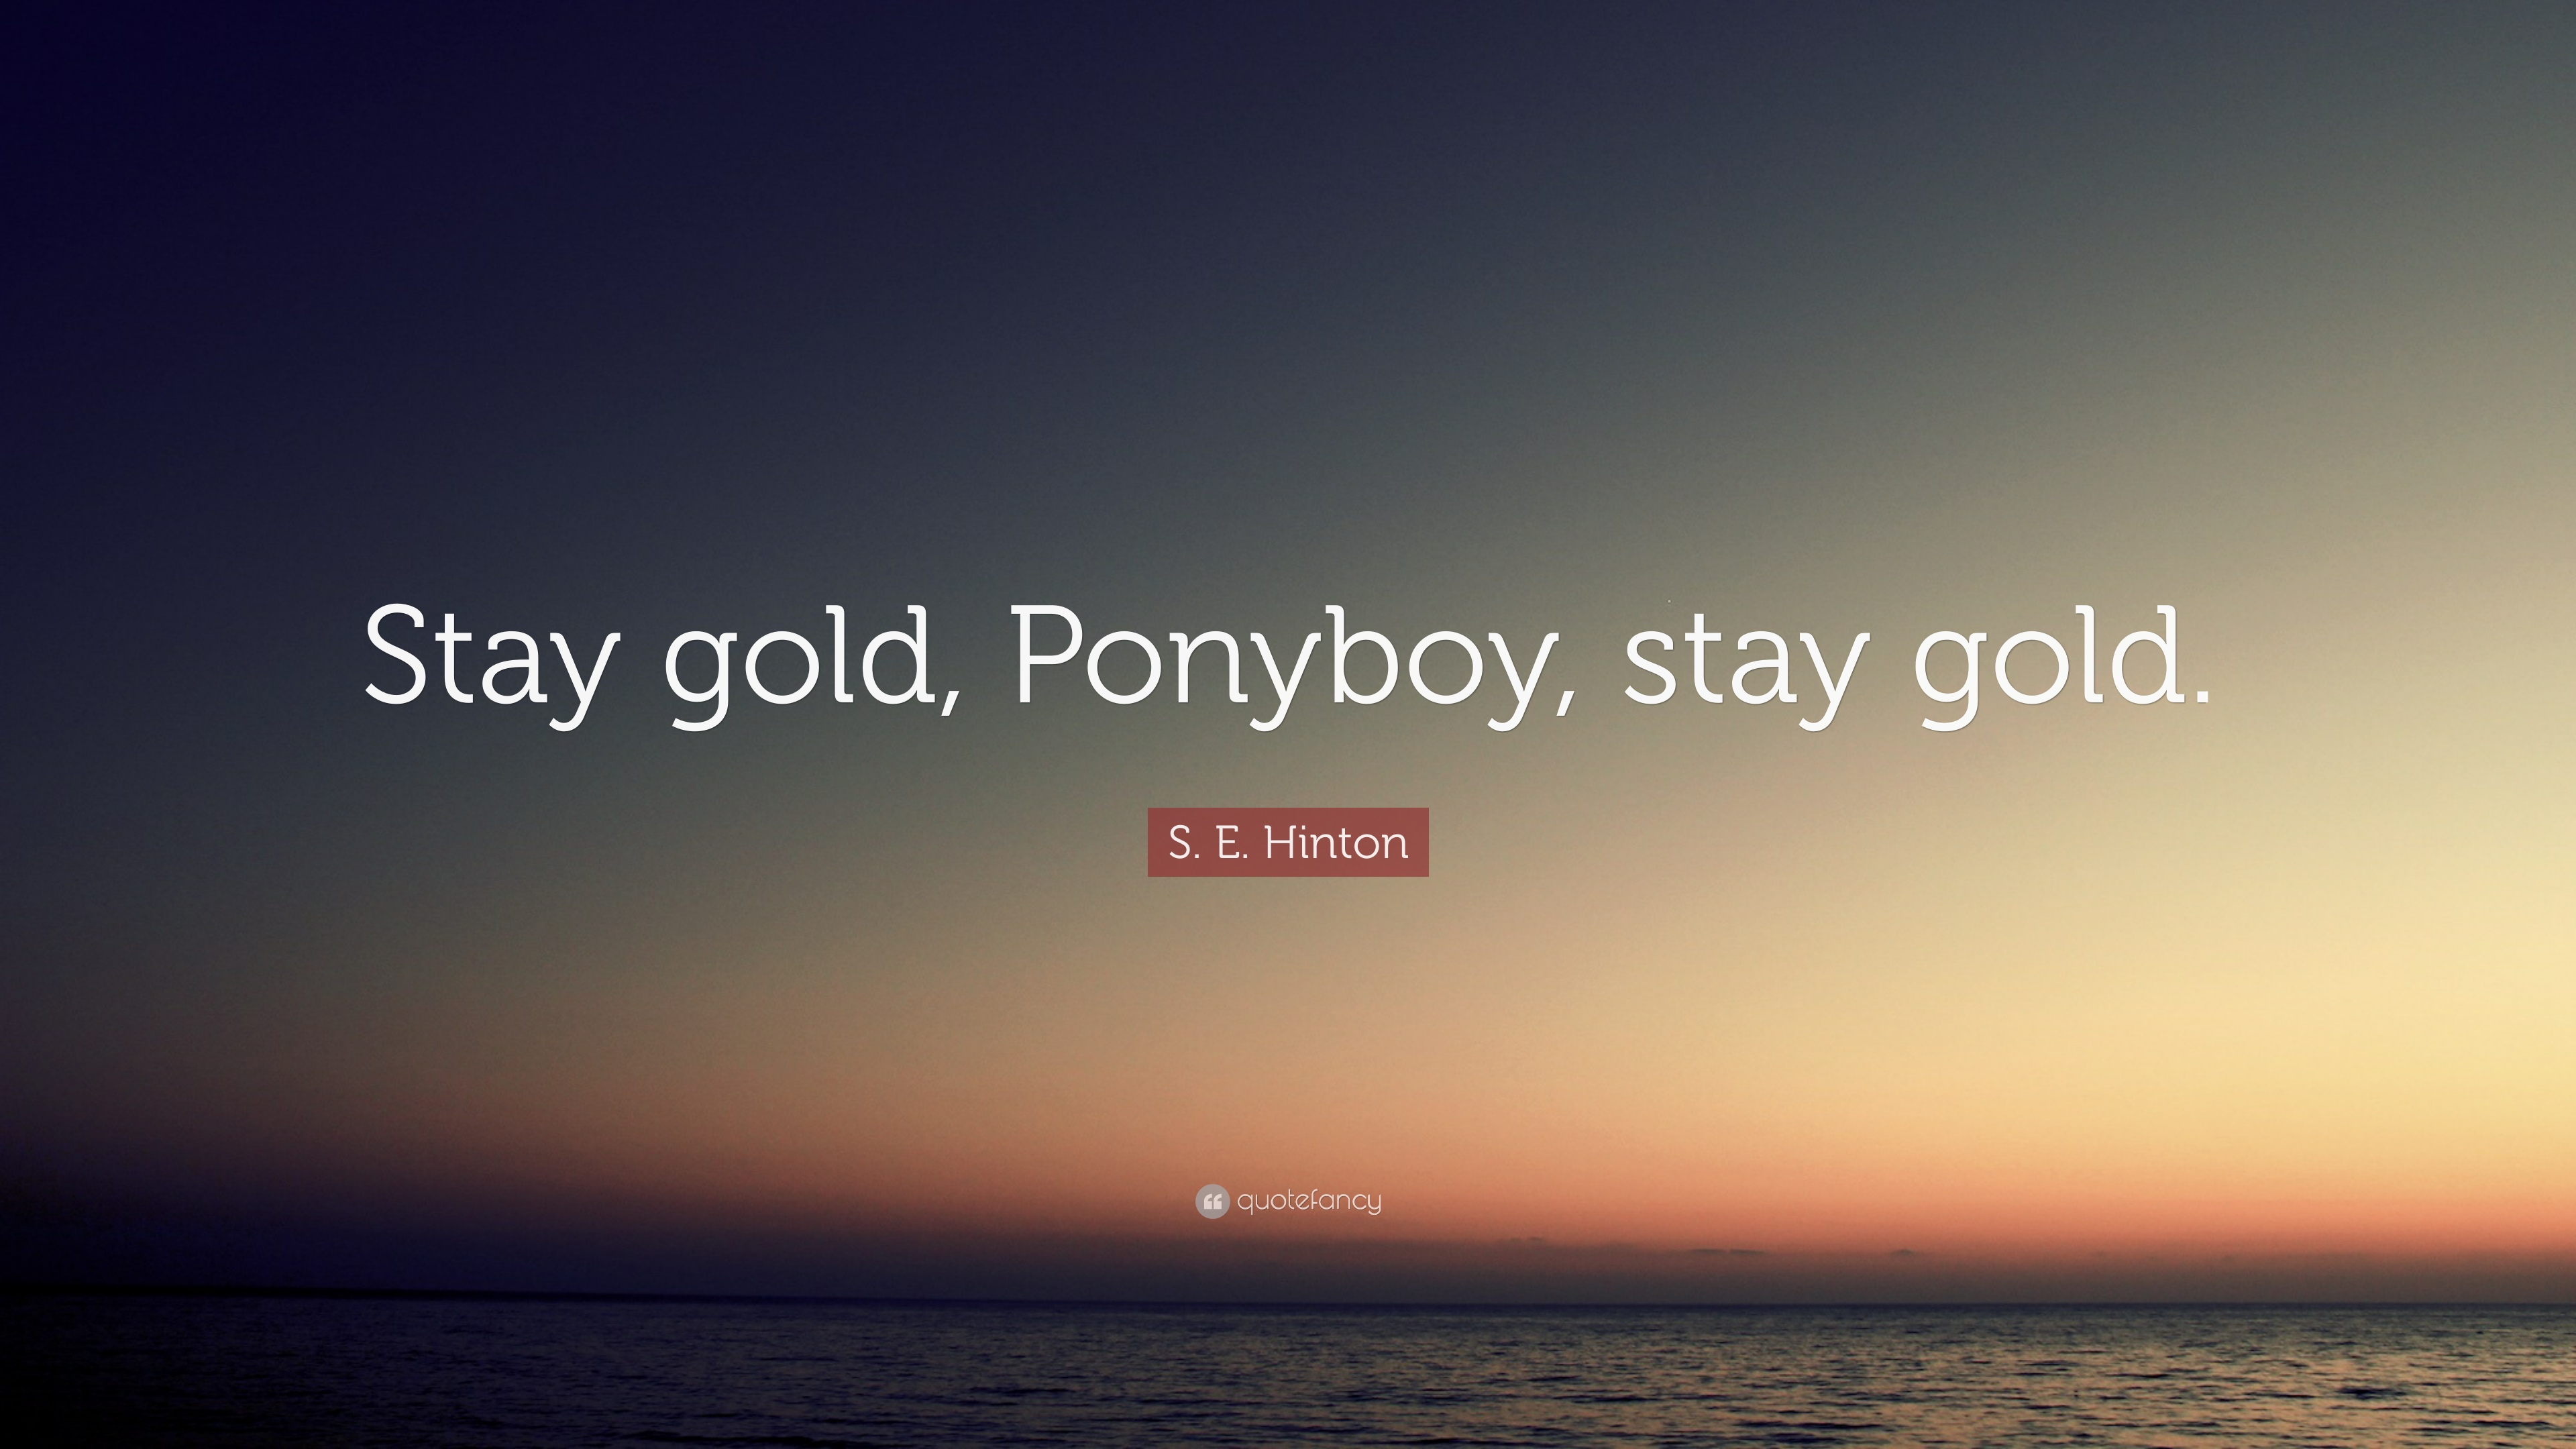 Stay Golden Ponyboy Quote Video edited by shaun ladymon the outsiders. alessandro orsini